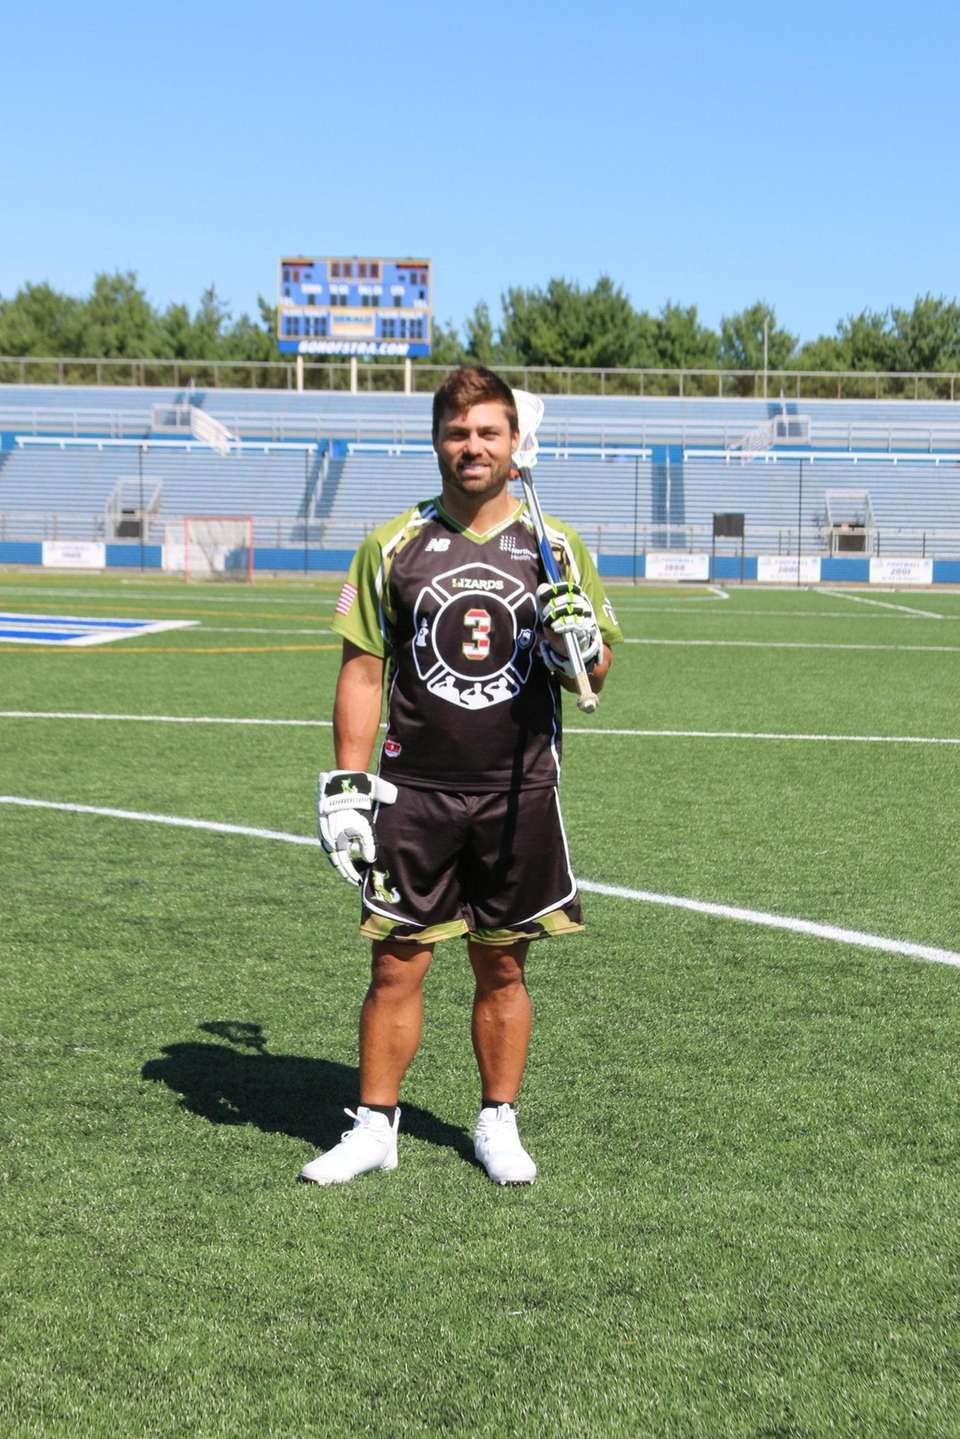 Lizards attacker Rob Pannell shows off the team's